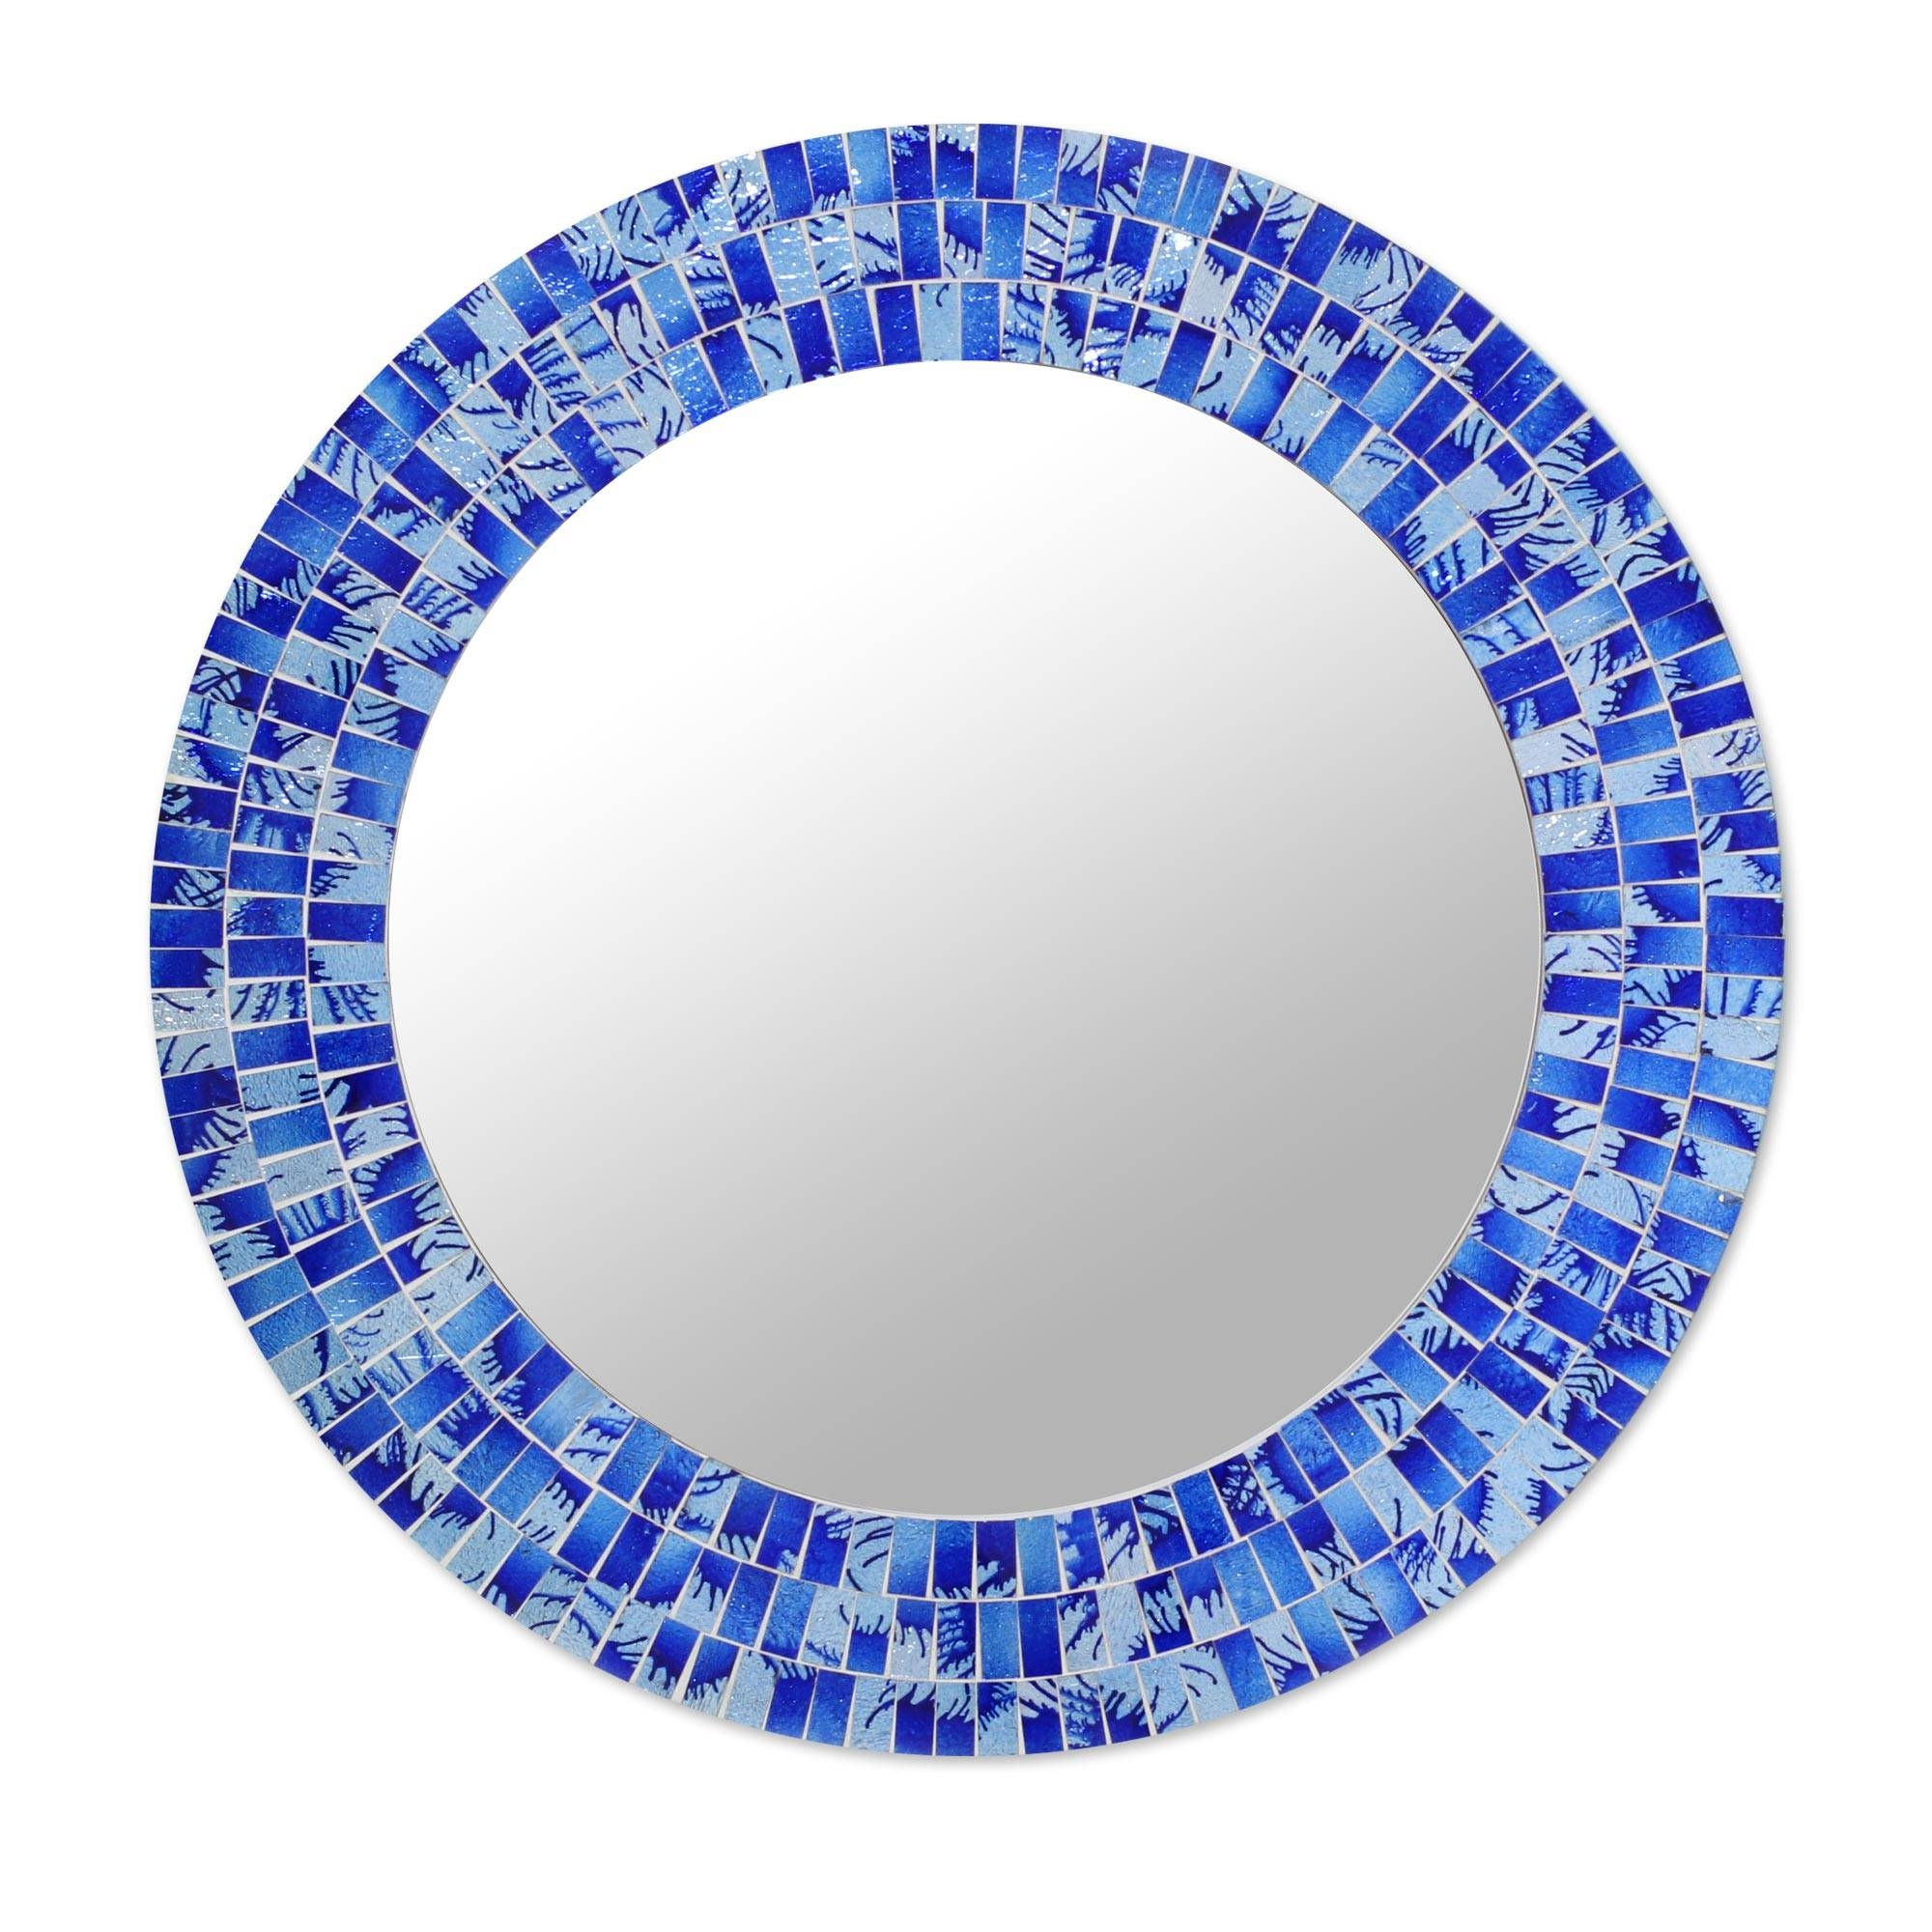 Mosaic Mirrors - Mosaic Mirror Collection At Novica intended for Mosaic Mirrors (Image 12 of 25)